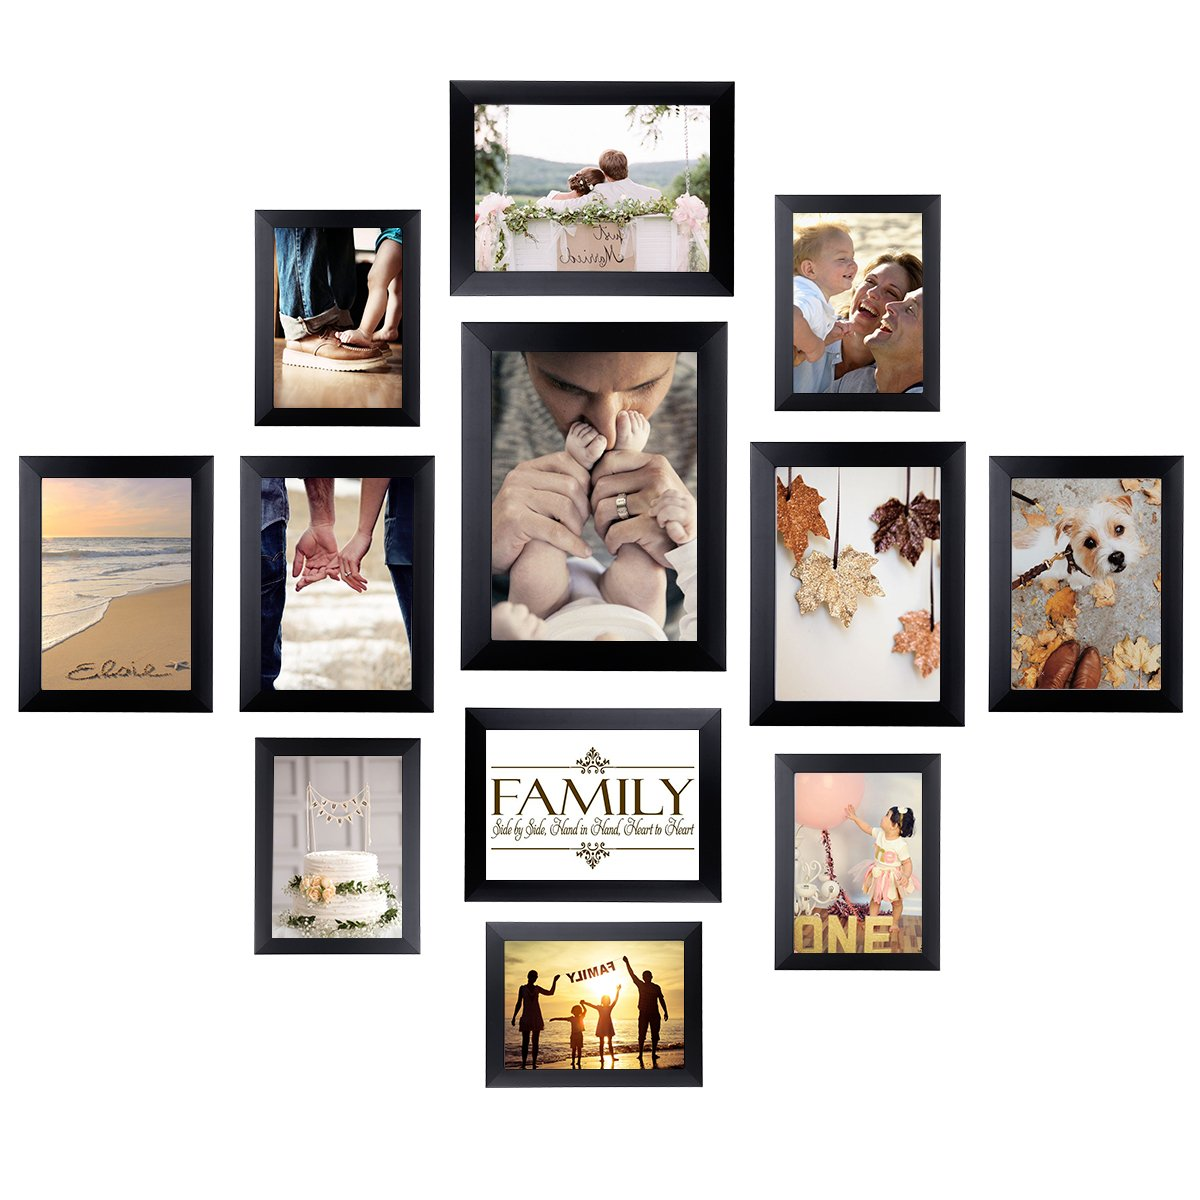 HOMEMAXS 12 Pack Picture Frames Collage Photo Frames Wall Gallery Kit for Wall and Home, One 8x10 in, Four 5x7 in, Five 4x6 in, Two 6x8 in, Black by HOMEMAXS